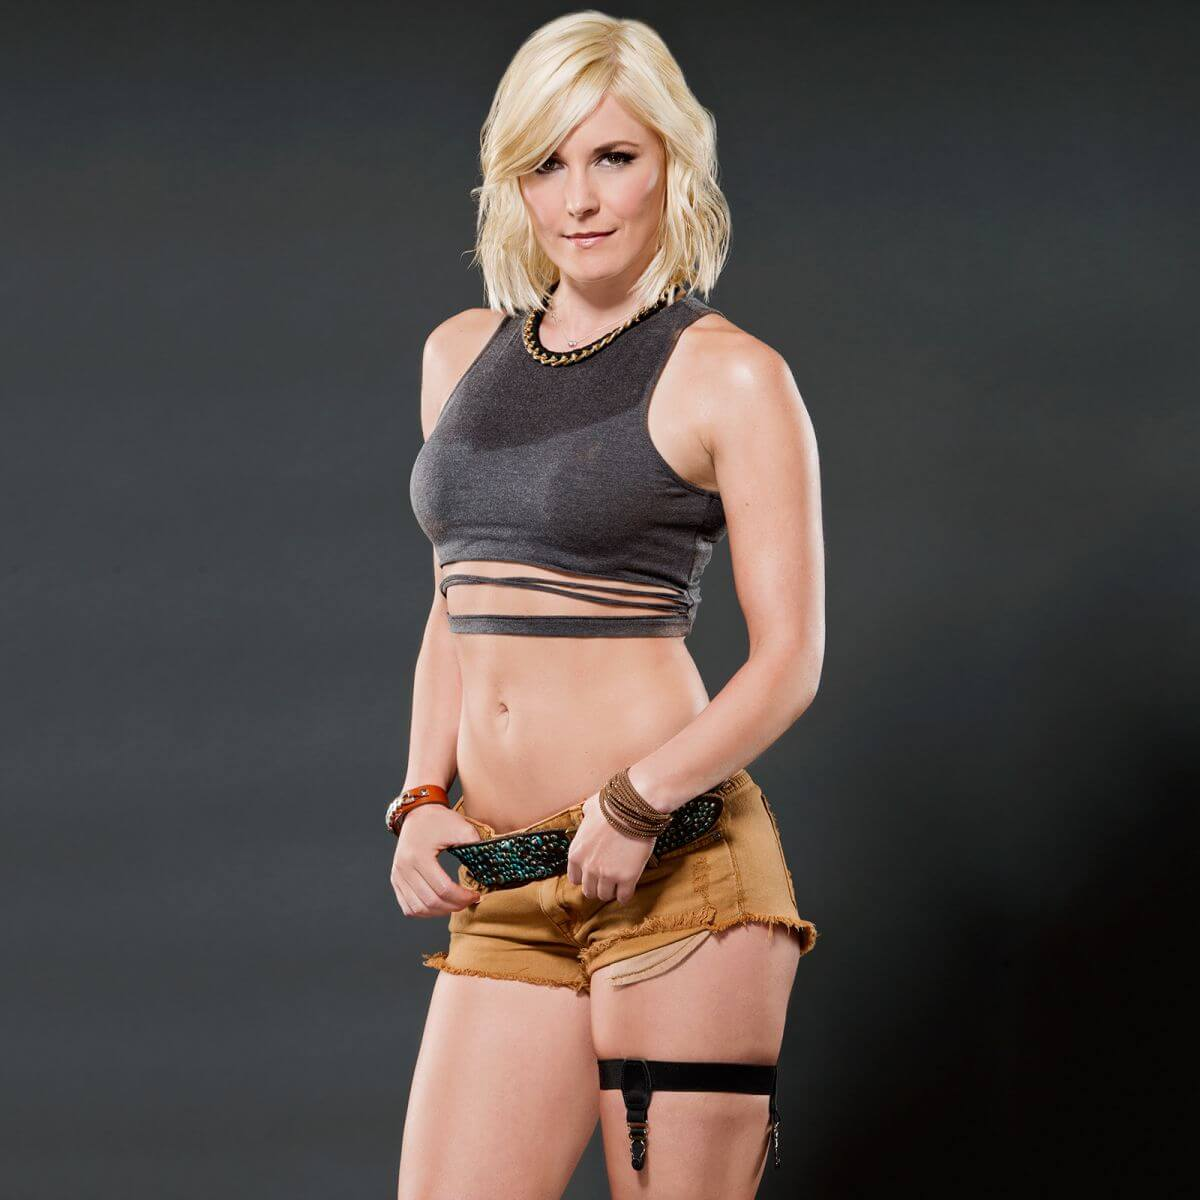 Renee Young hot boobs